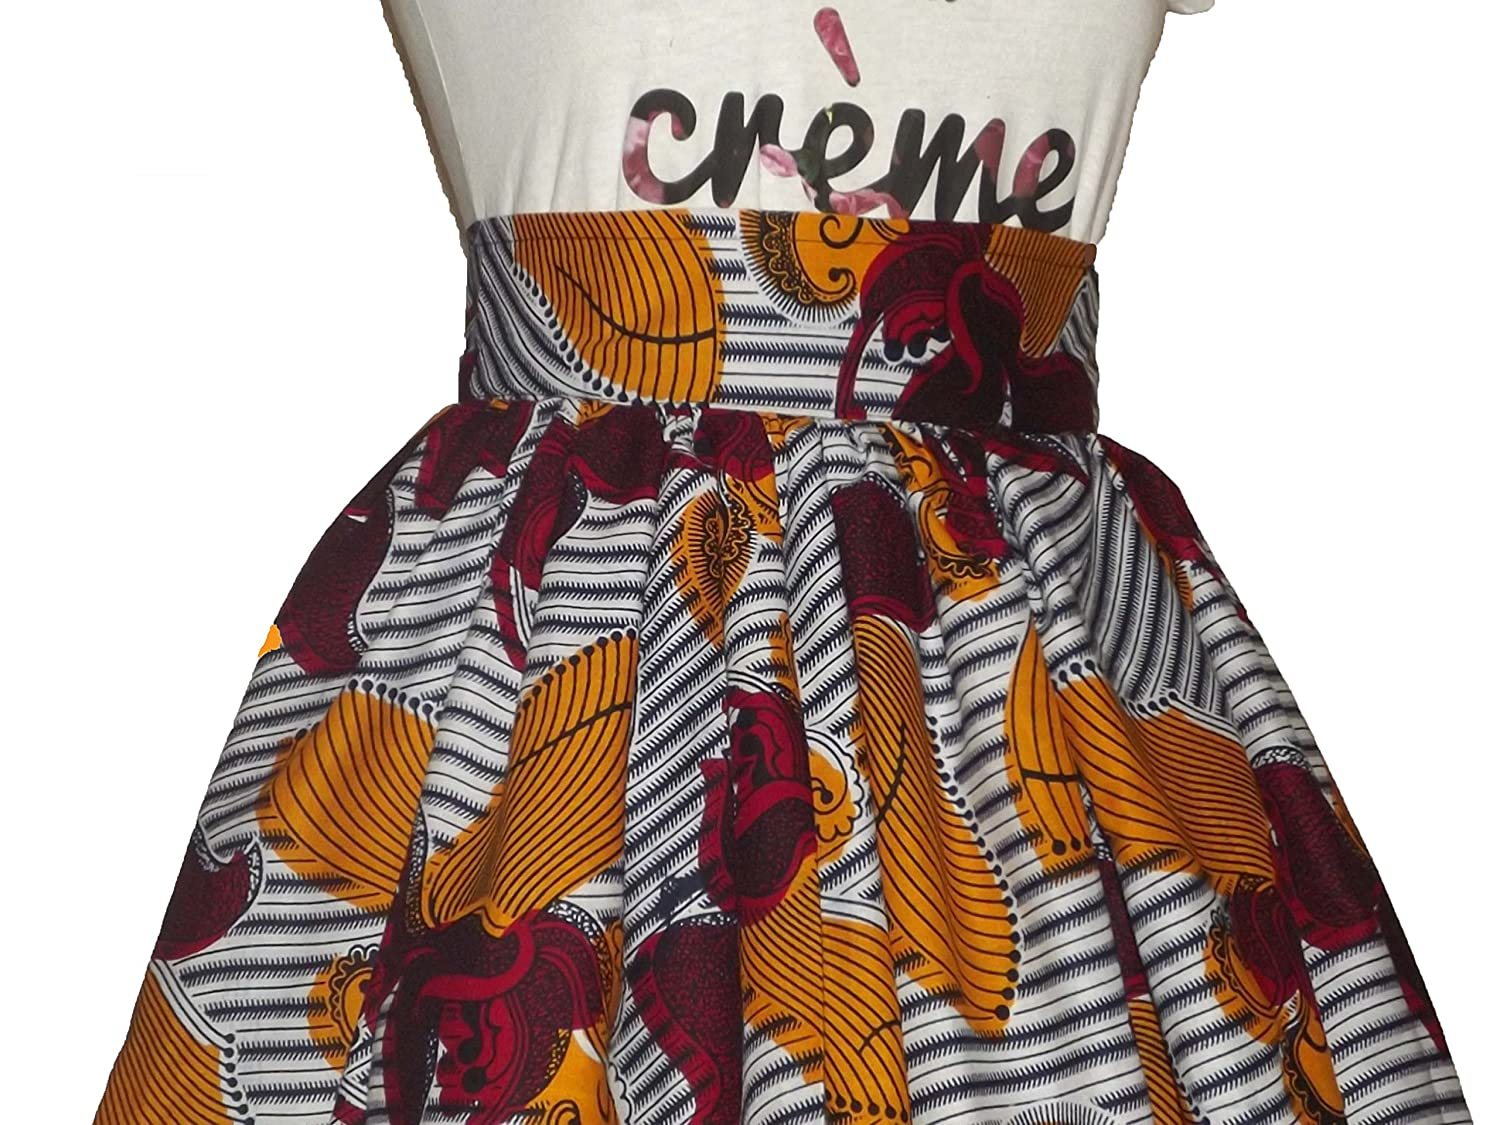 African Skirt Above Knee length, Maxi Jupe African UK size 10